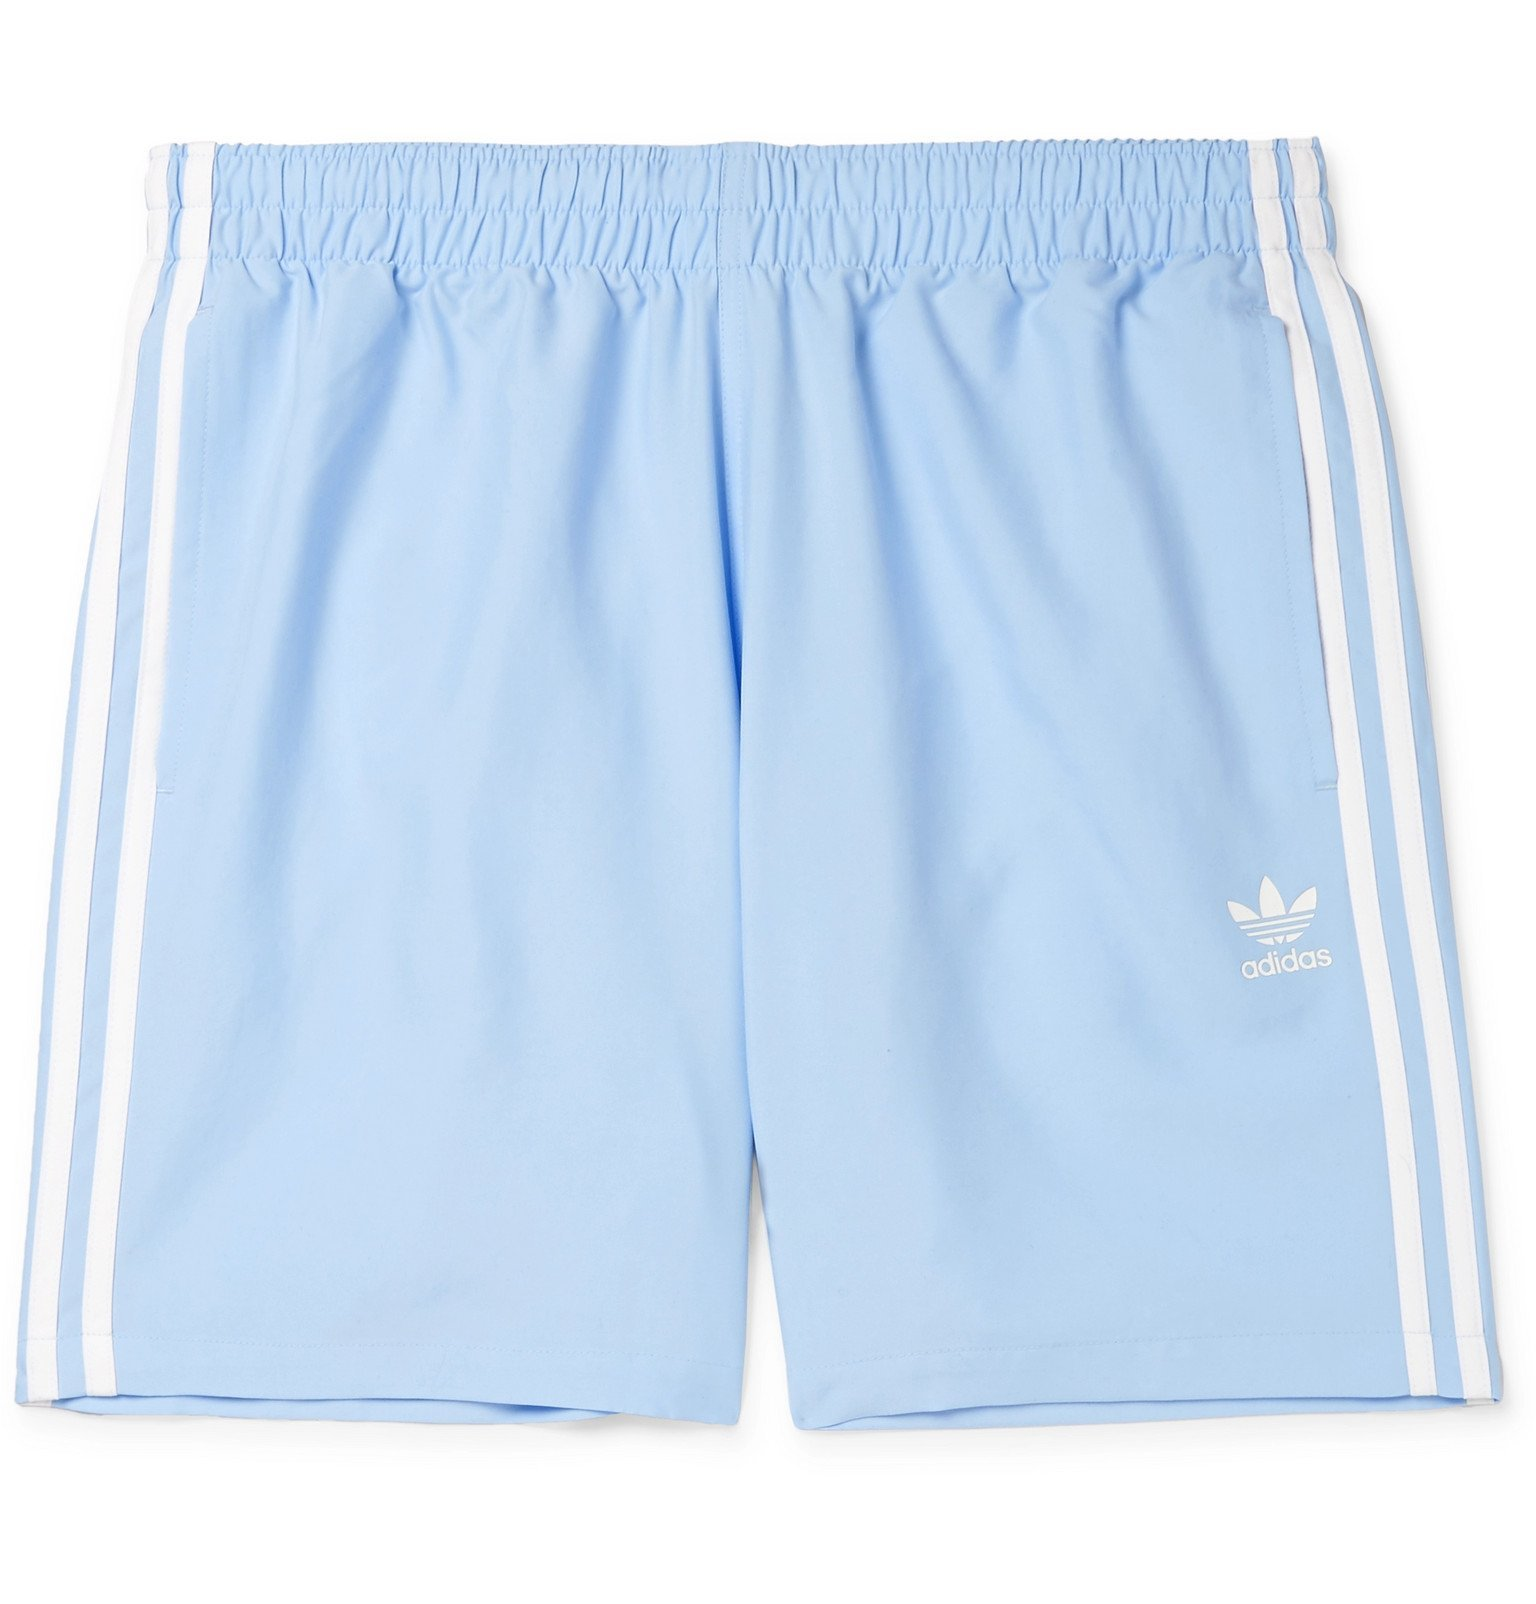 adidas Originals - Mid-Length Striped Logo-Print Swim Shorts - Blue